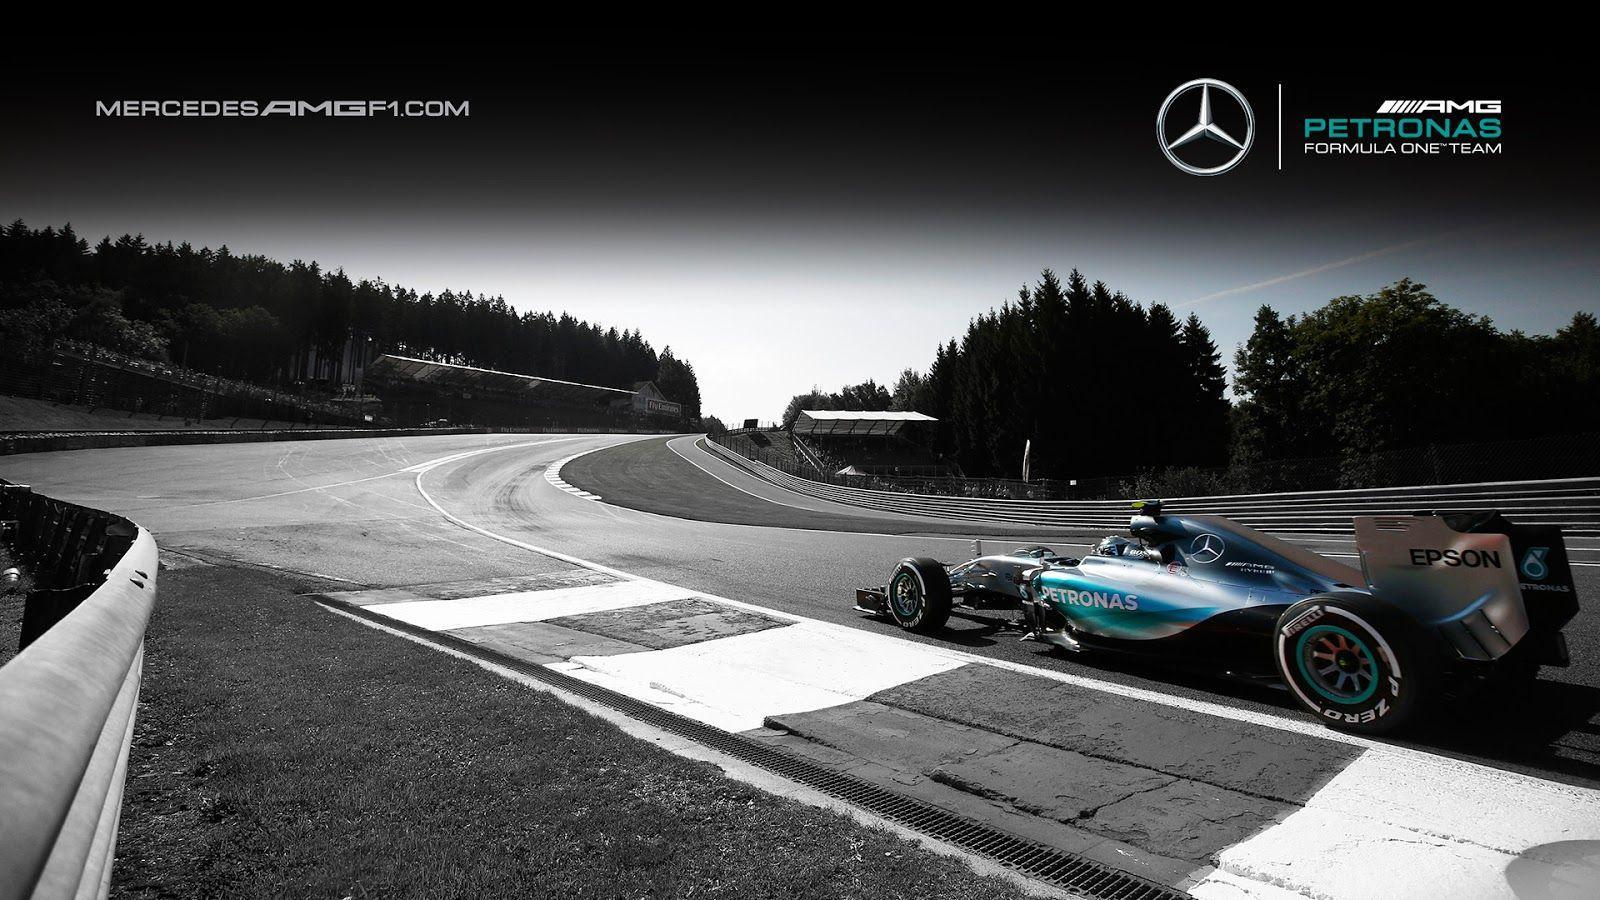 Mercedes AMG Petronas W06 2015 F1 Wallpapers